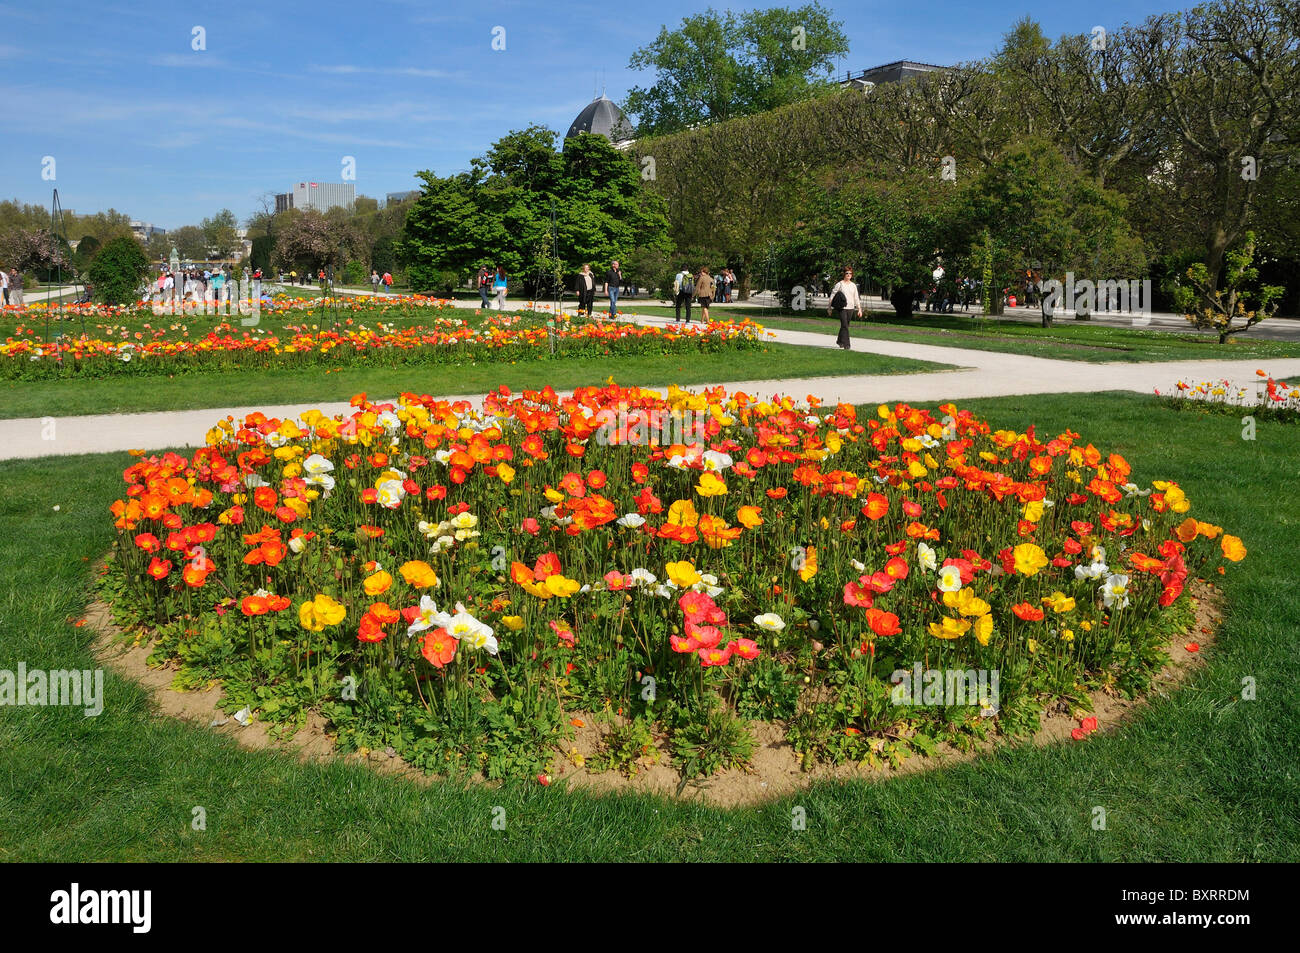 jardin des plantes botanical garden paris le de france france stock photo royalty free. Black Bedroom Furniture Sets. Home Design Ideas